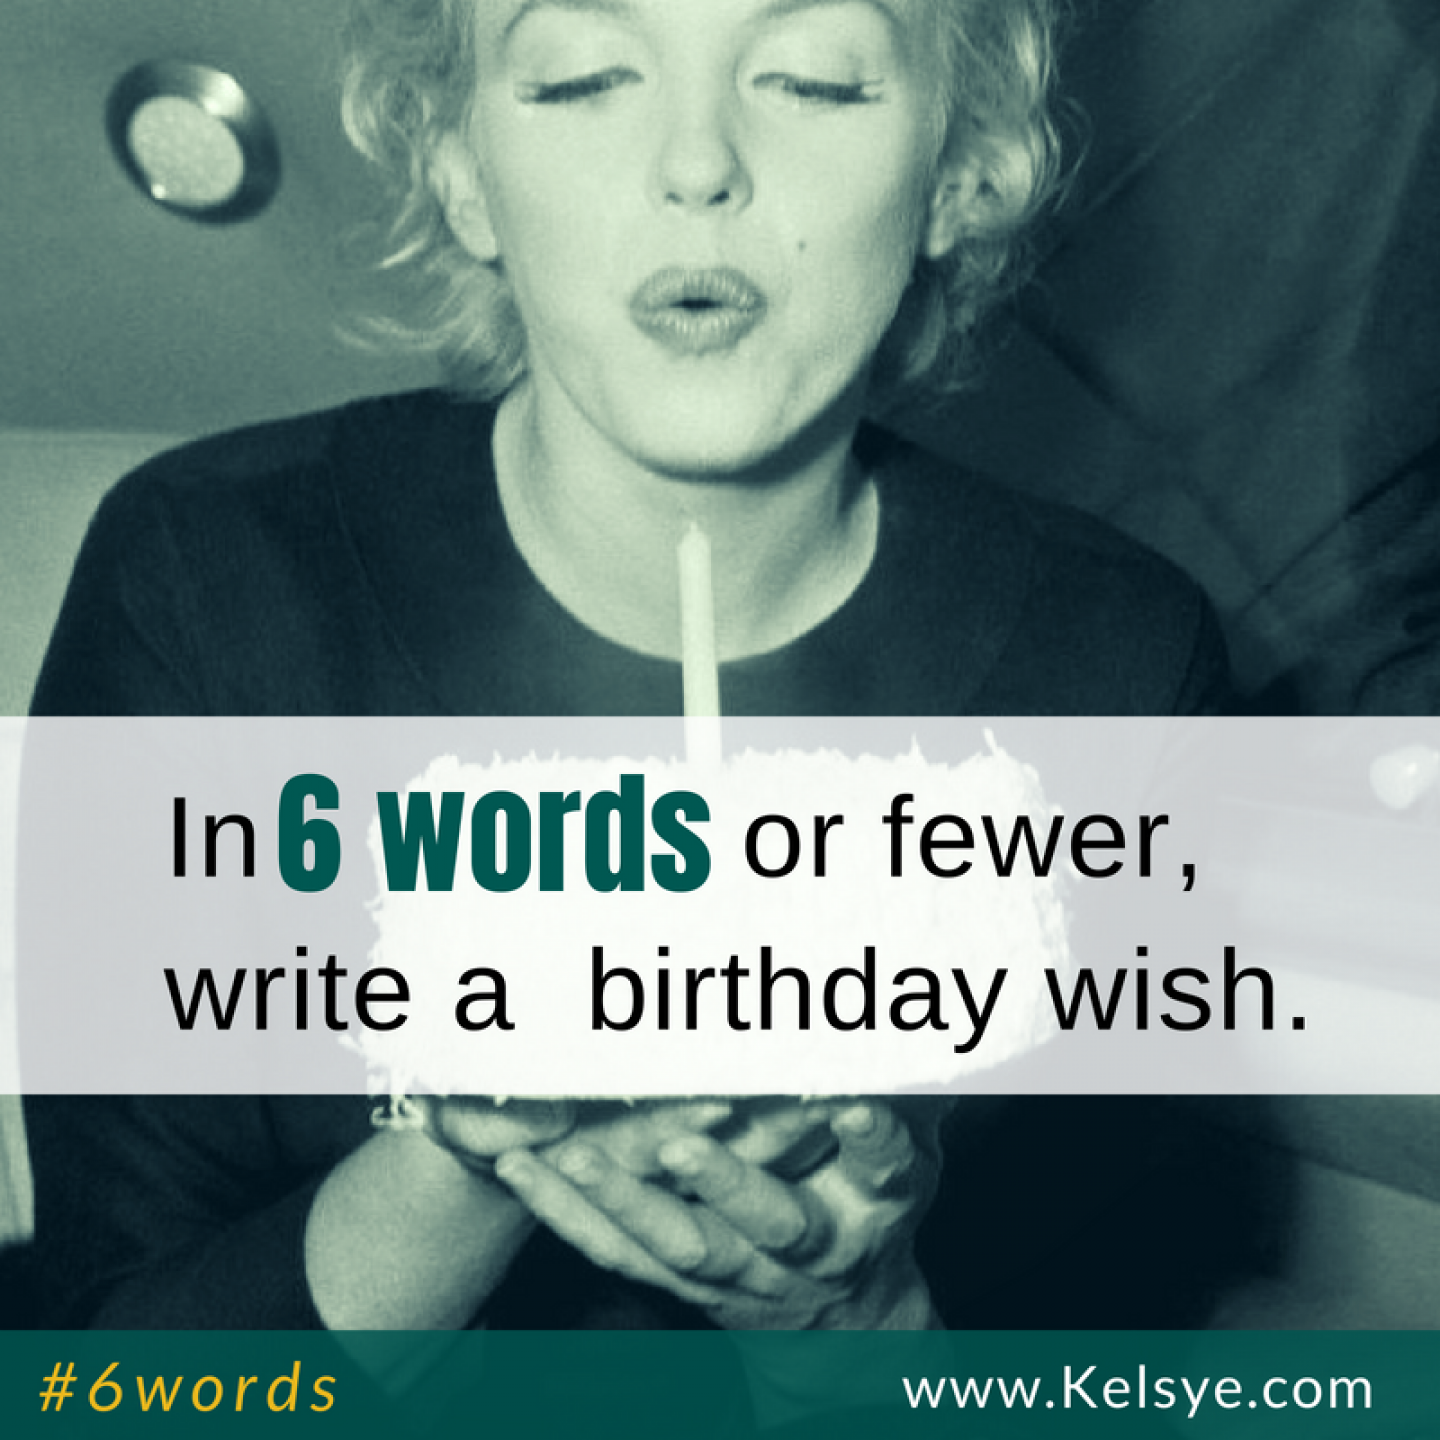 USED 6words sq birthday wish